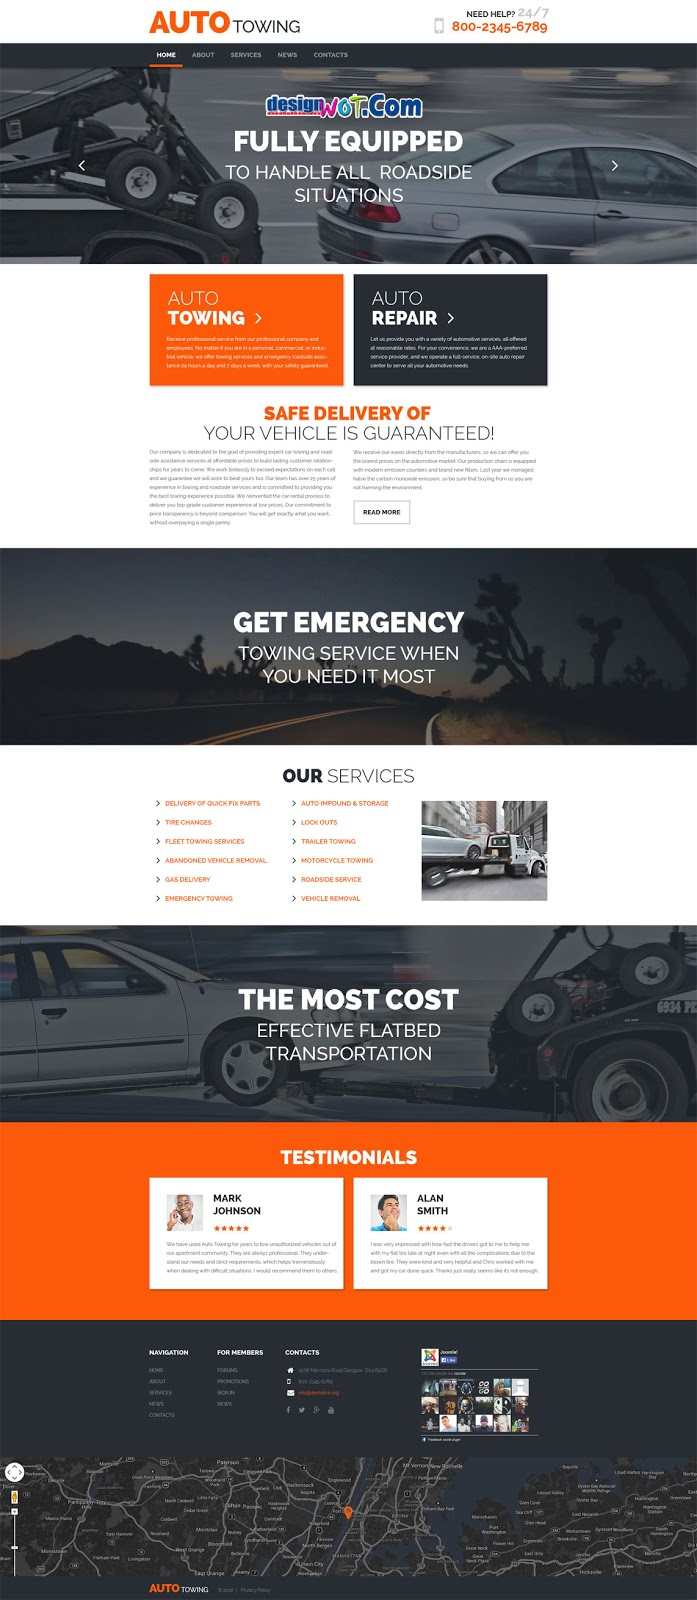 AUTOTOWING Responsive WordPress Theme